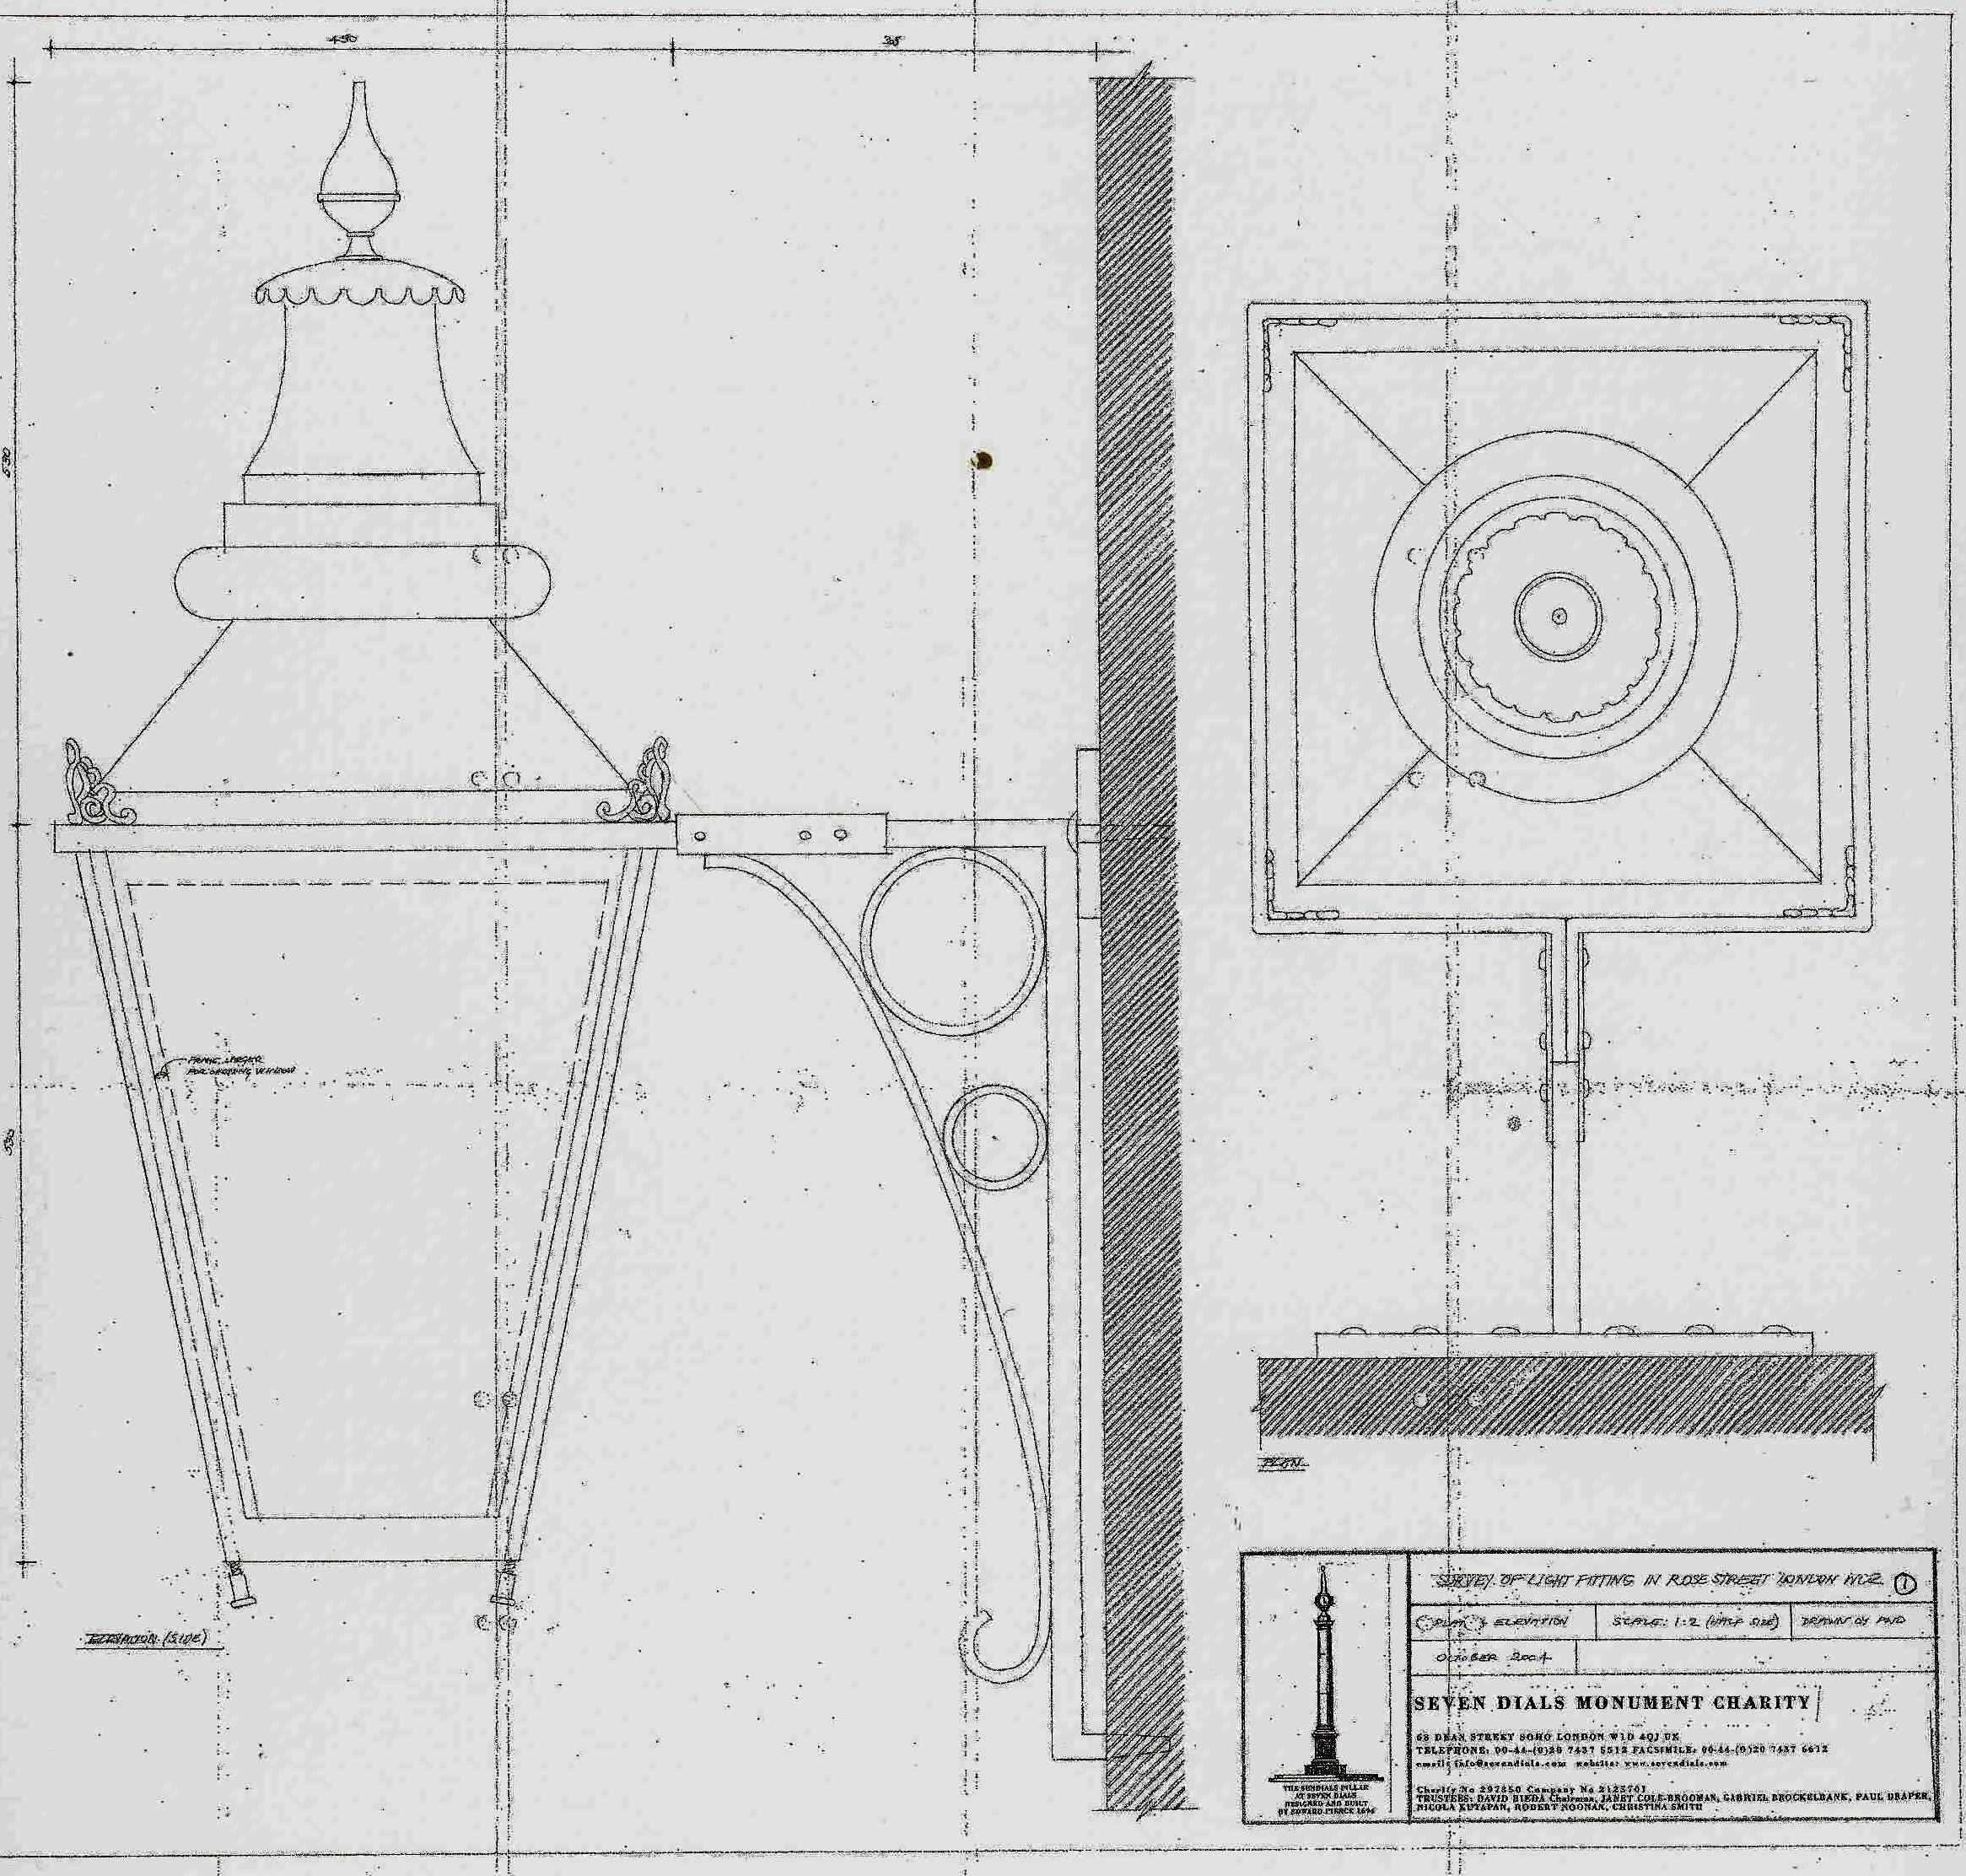 Paul Draper's survey drawing of the 19th century lantern on the Lamb and Flag, Rose Street.